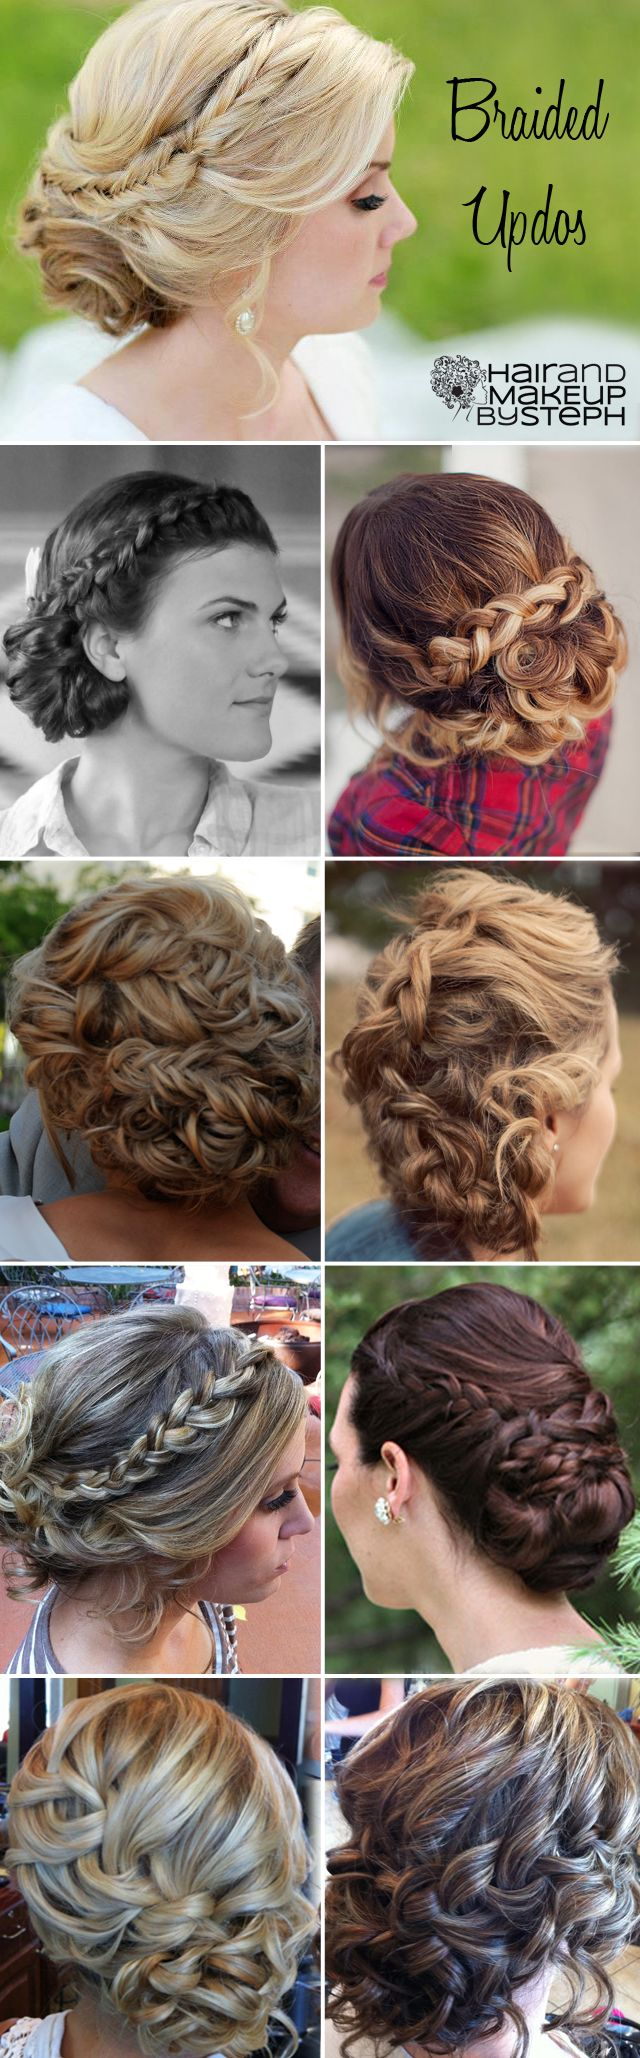 Up dos for elaborate hair style options